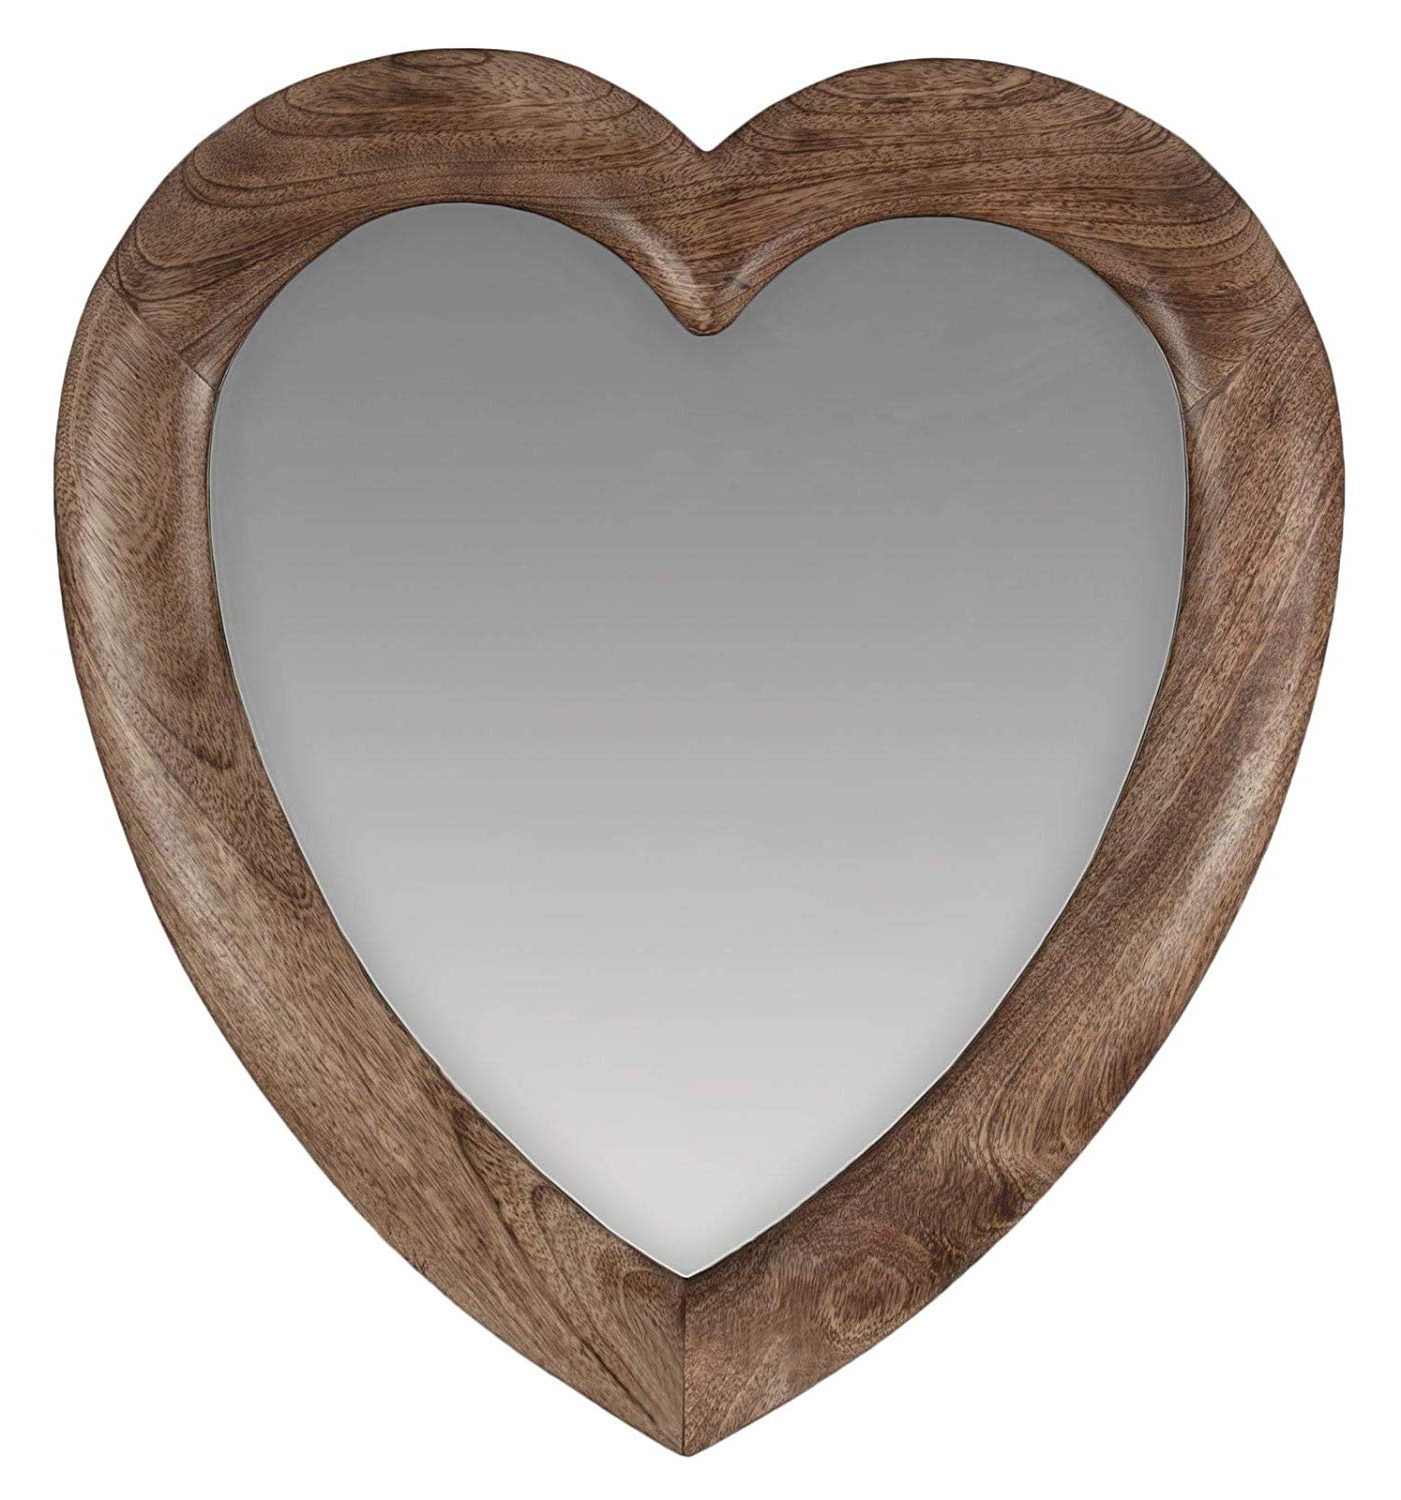 Popular Heart Wall Mirrors In Once A Tree Love Heart Wall Mirror Mango Wood 58Cm X 52Cm: Amazon (View 10 of 20)